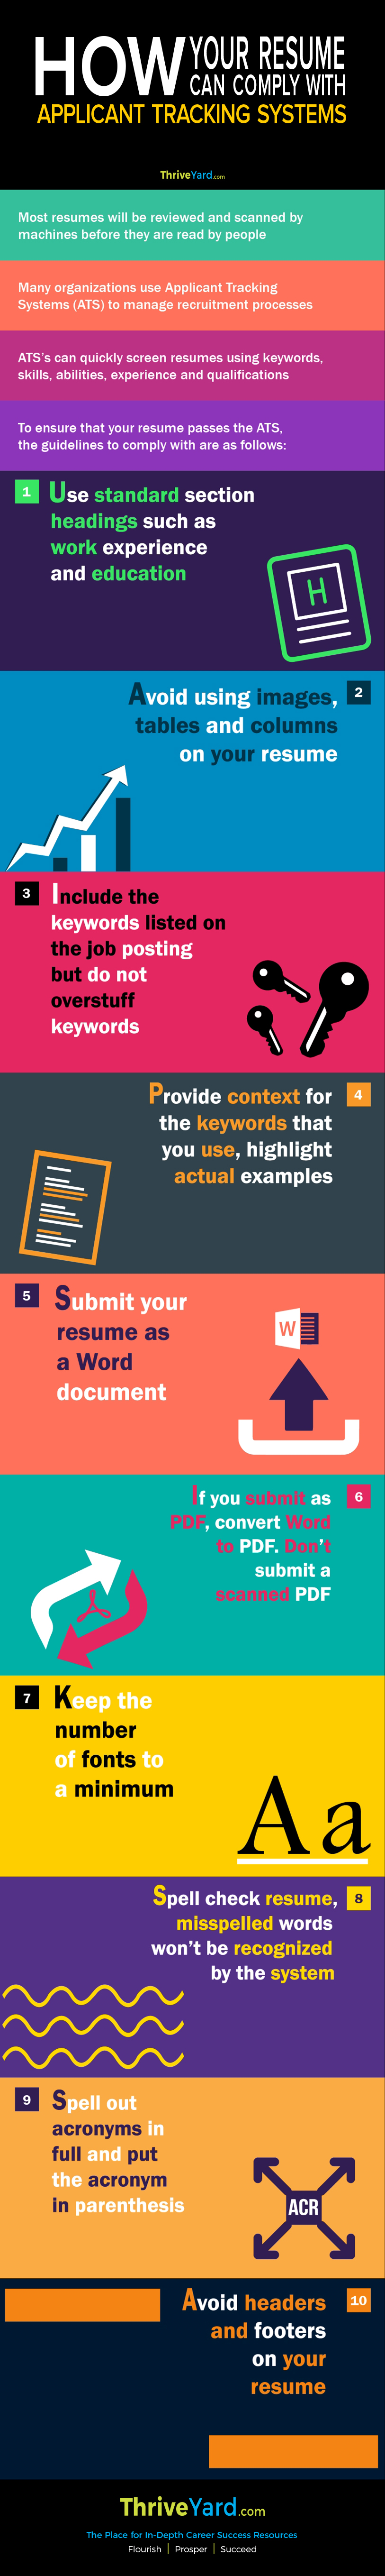 How Your Resume Can Comply With Applicant Tracking Systems (ATS) – Infographic